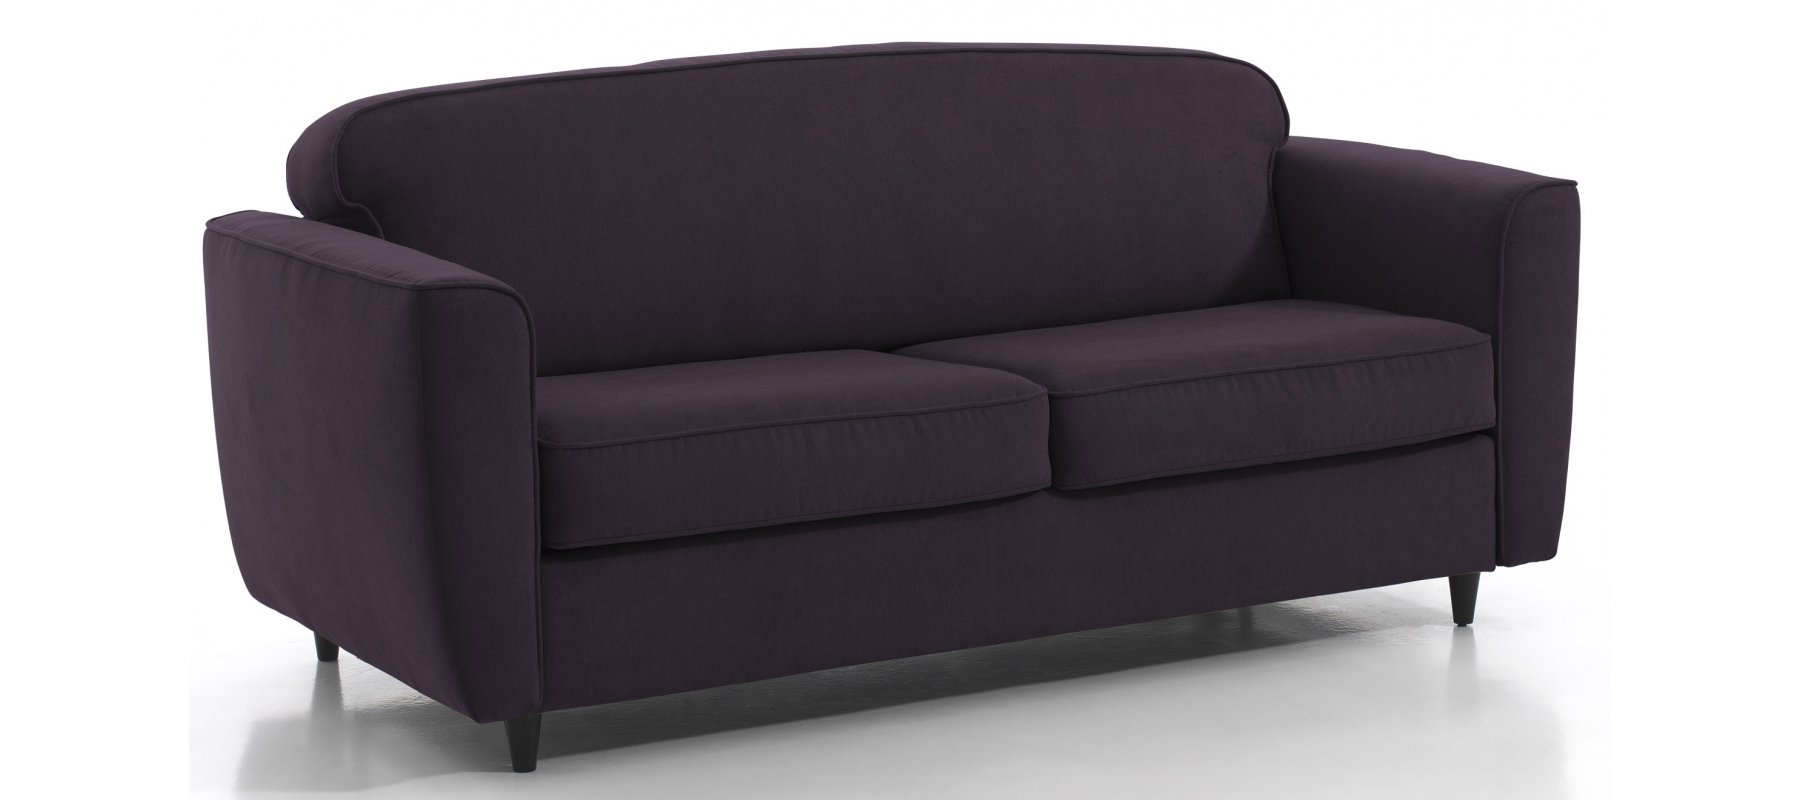 Canapé Convertible Club Canapé Convertible 3 Places Club Couchage 140cm